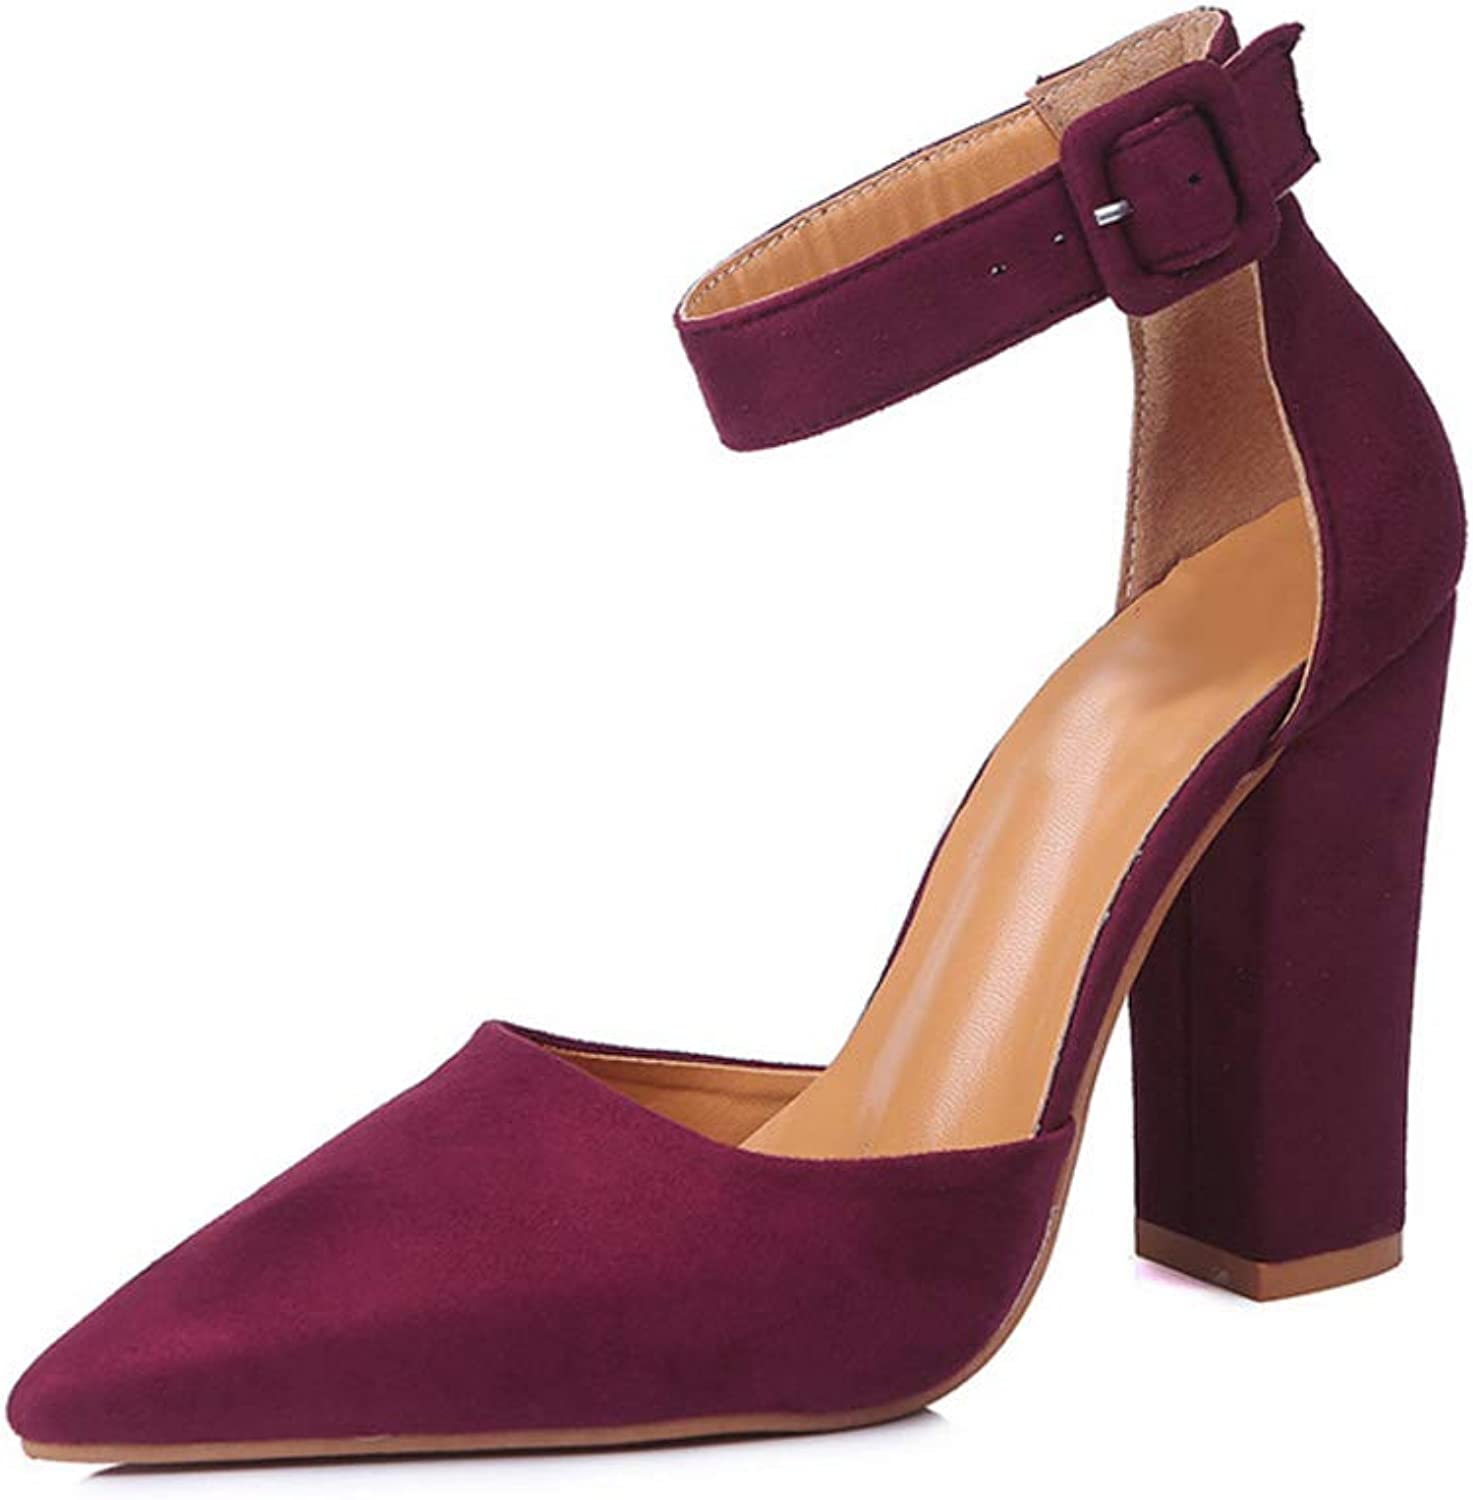 Aiweijia Ladies shoes Casual Pointed Toe Ankle Buckle Thicken High Heel shoes